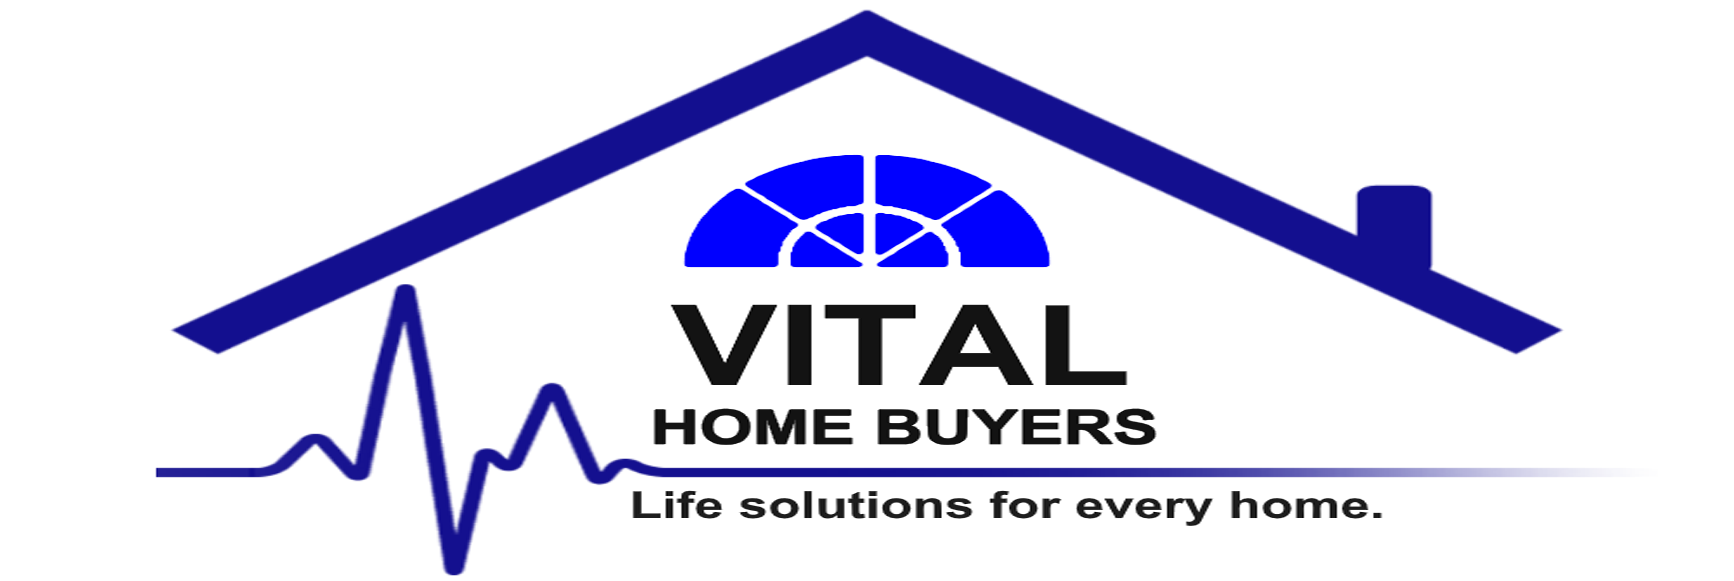 Vital Home Buyers, LLC